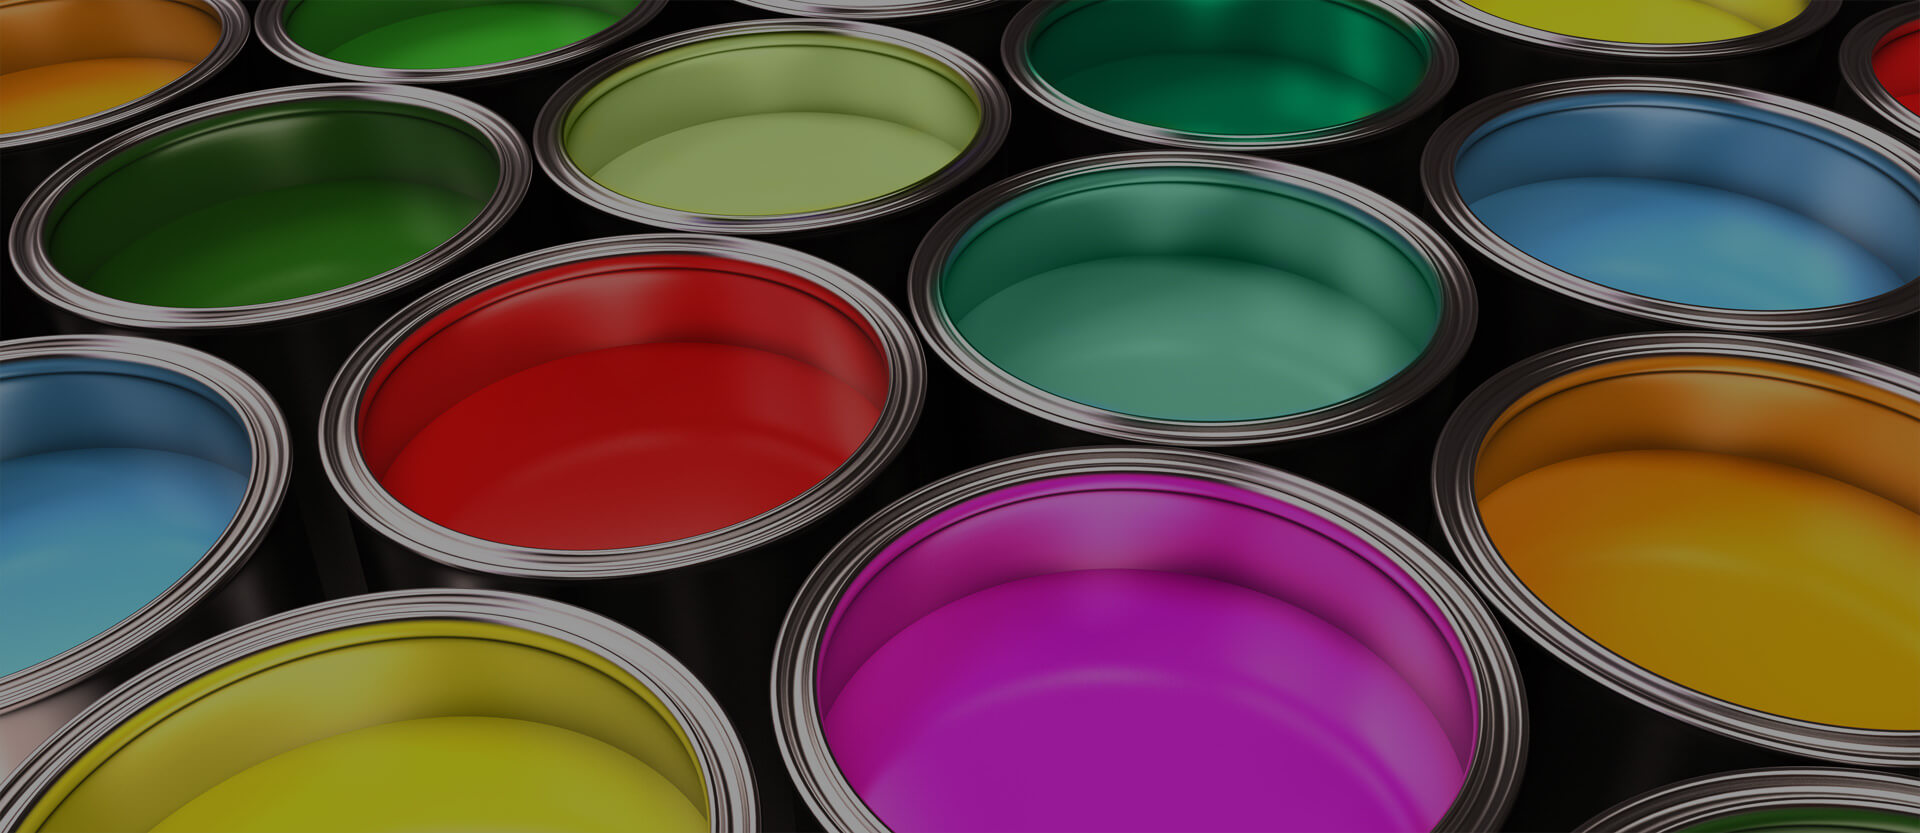 paints-coatings-industry-EHS-software-system.jpg